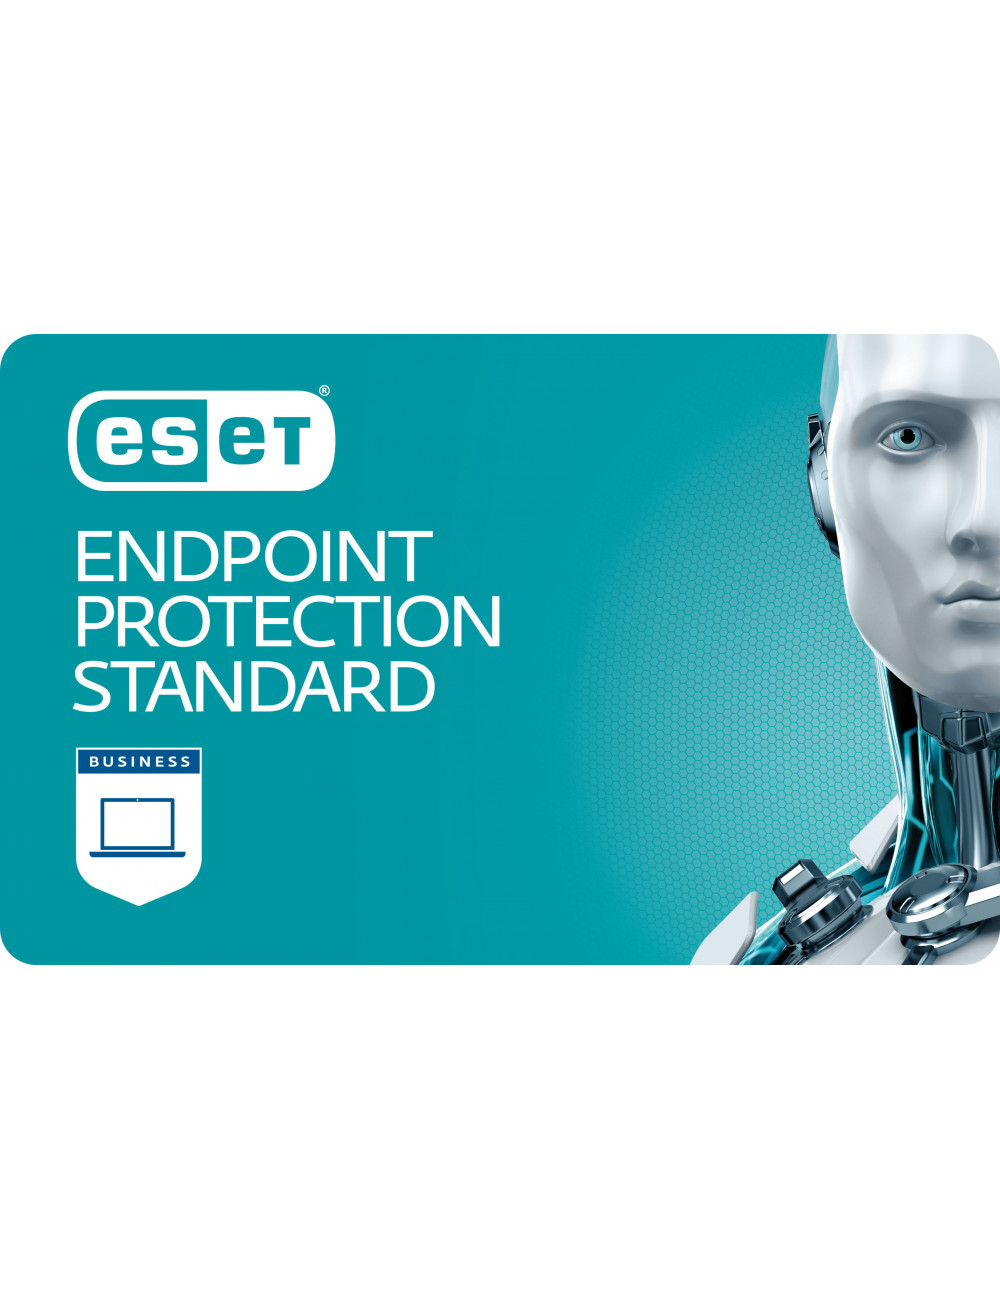 ESET Endpoint Protection Standard (50-99 postes) -  Licence 1 poste - 1 an